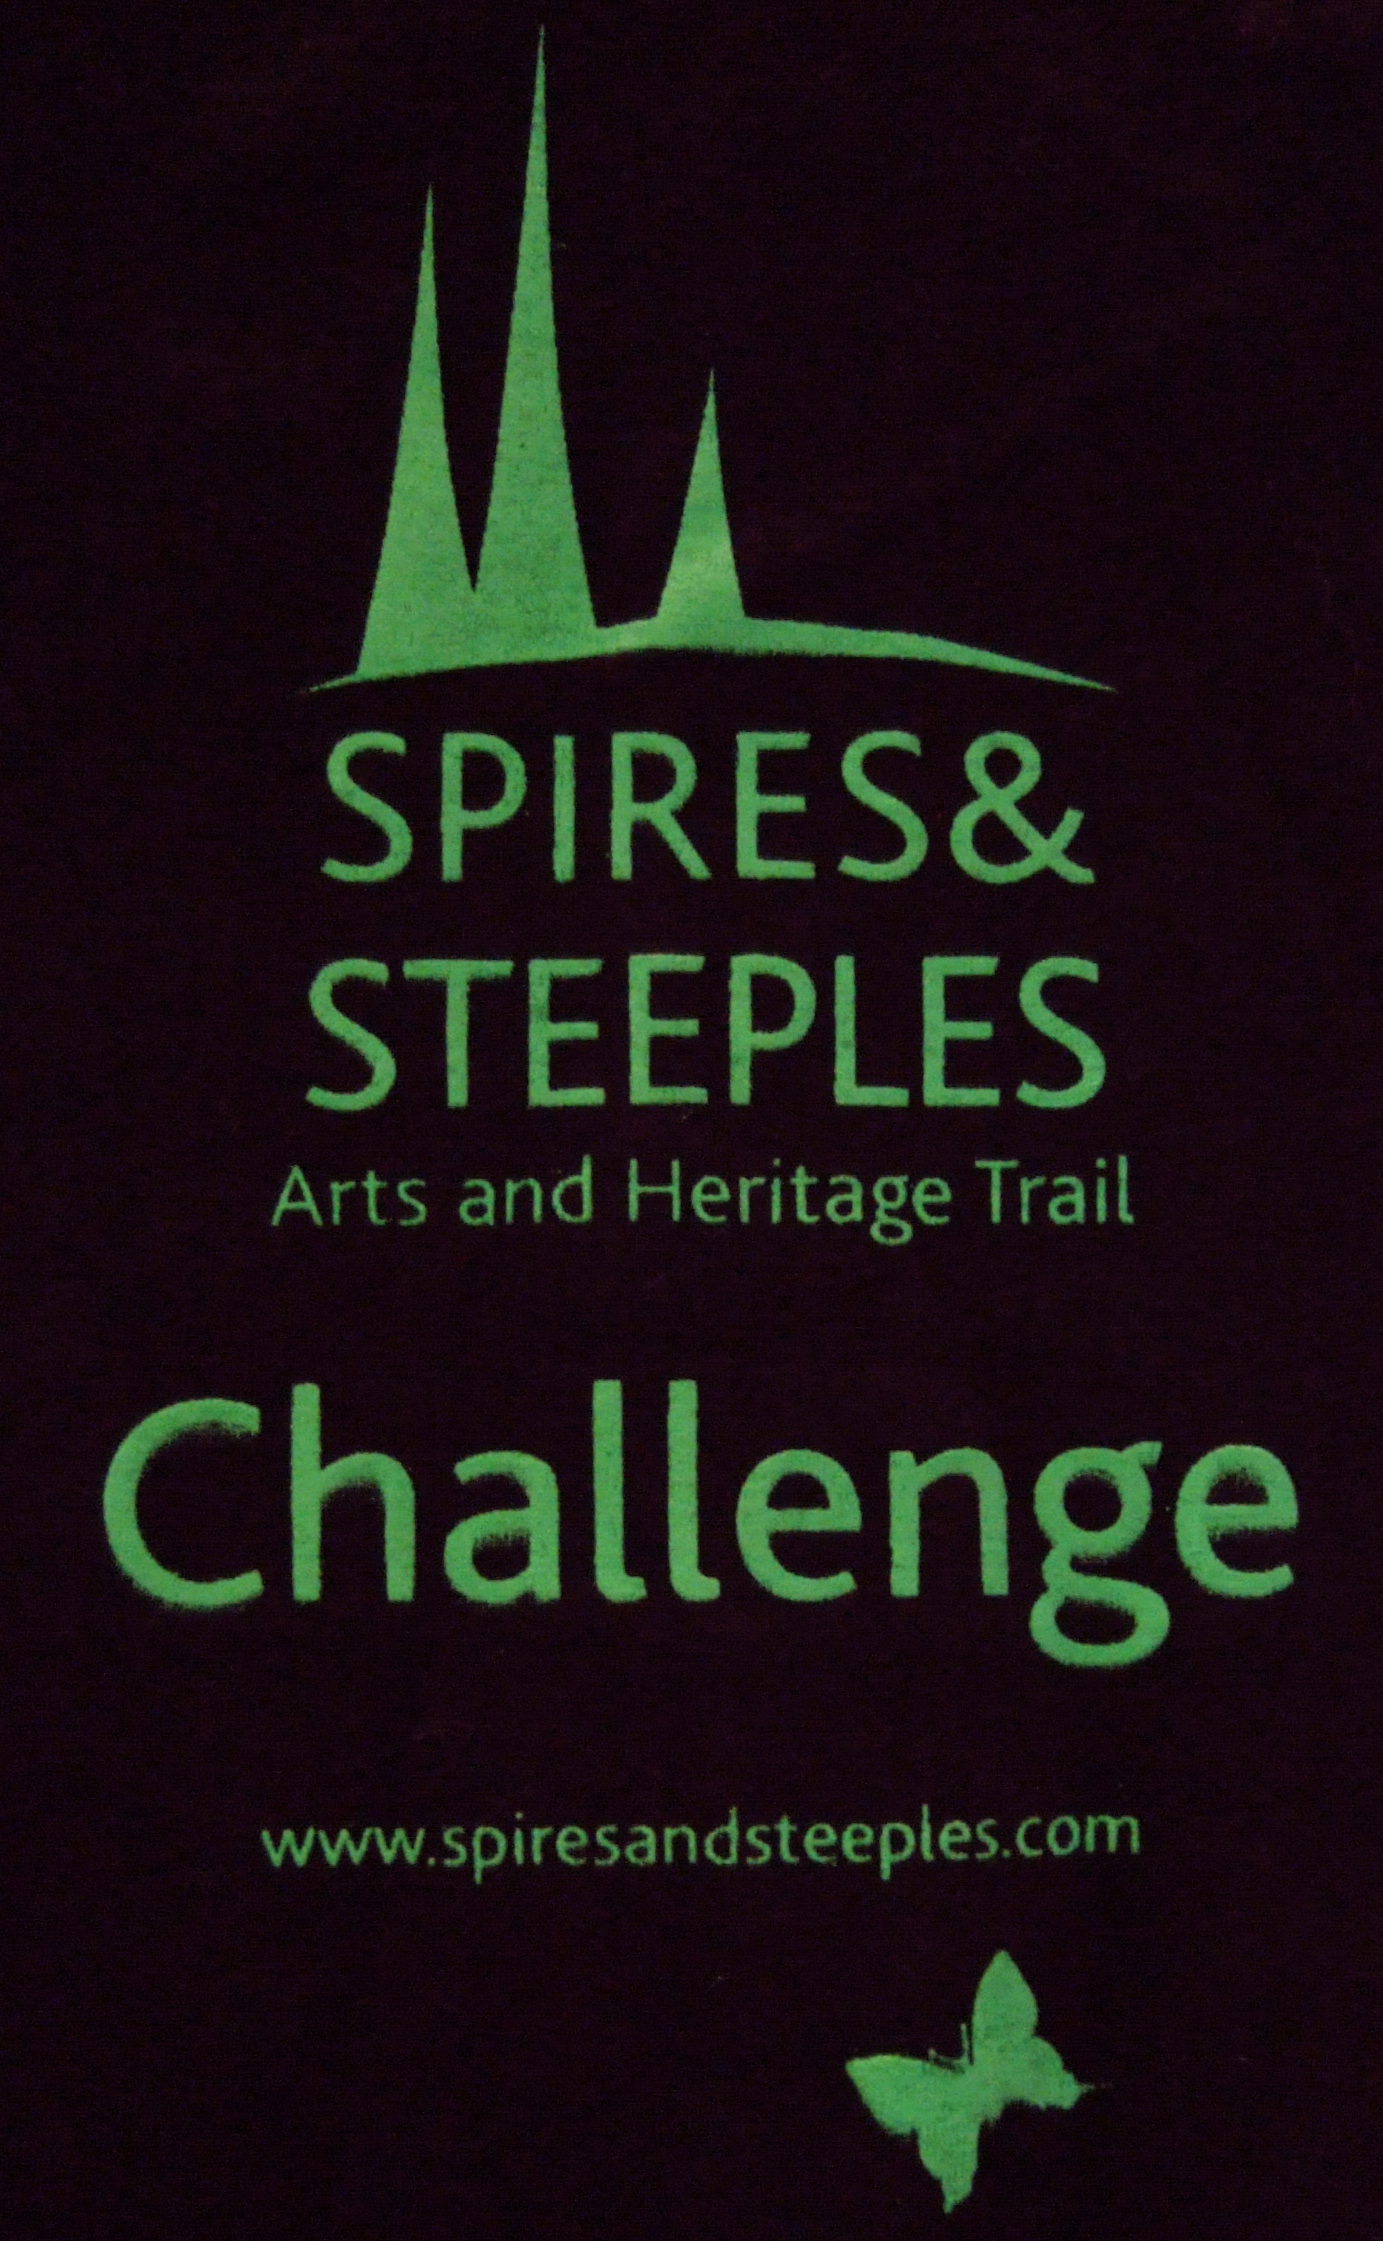 Spires and Steeples Challenge 2010 - Complete